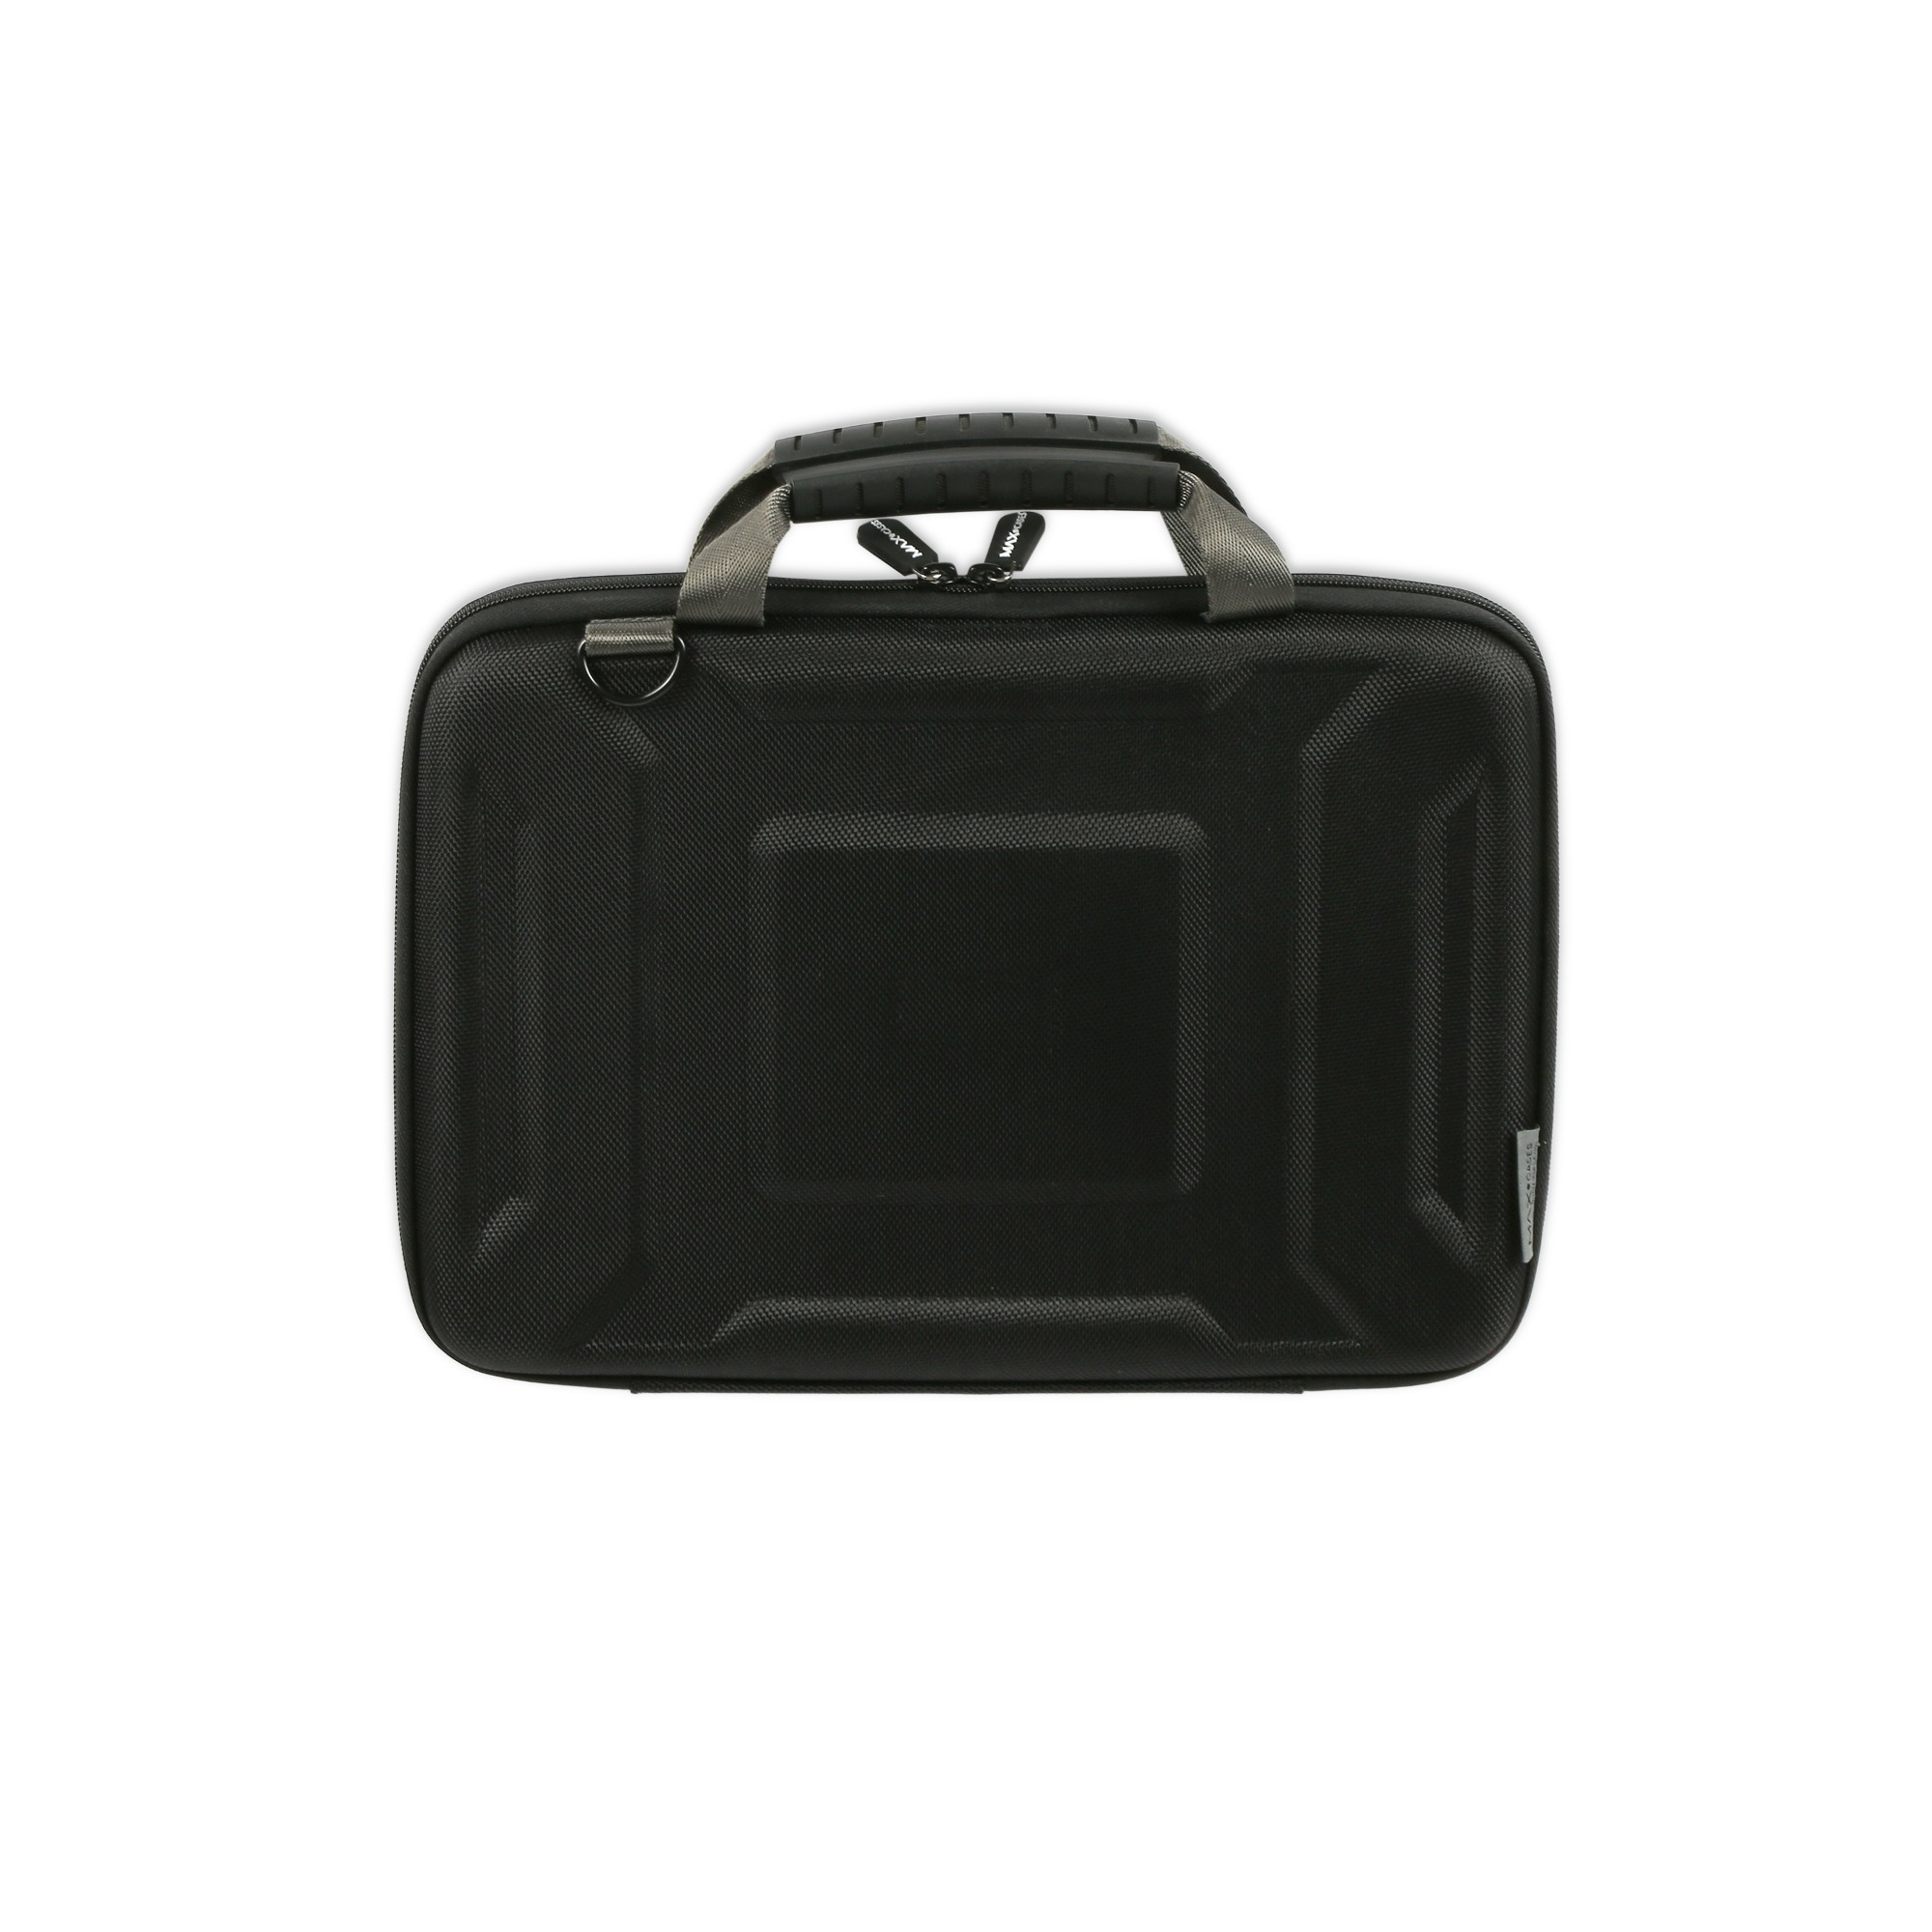 Max Cases Explorer Bag 3.0 - Notebook Carrying Case - 11in - Black